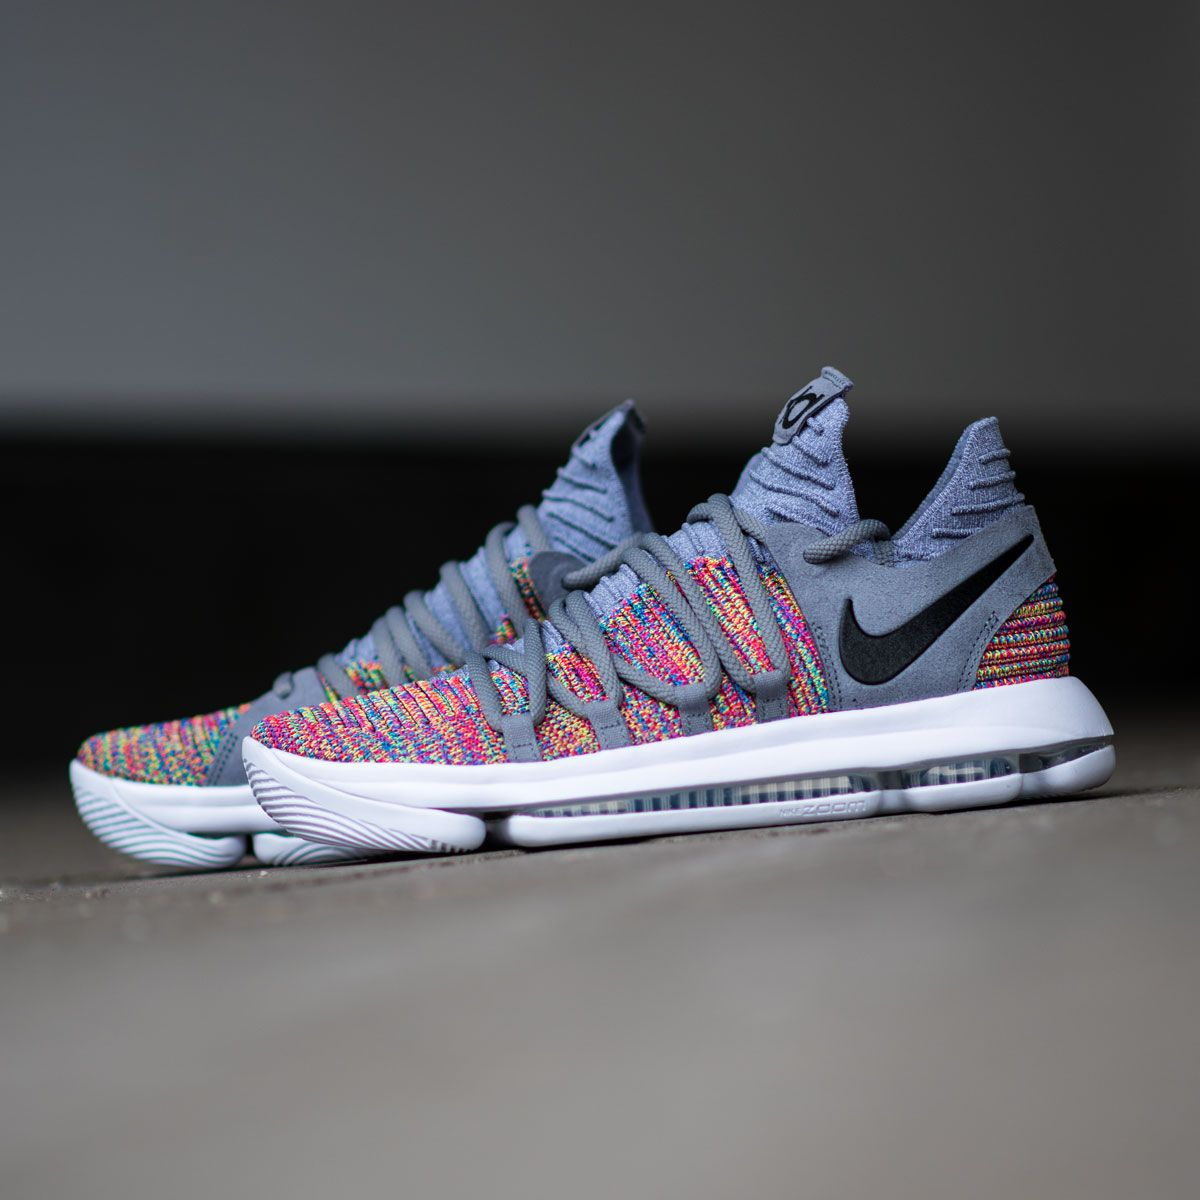 cheap for discount dc739 c1db1 The rainbow version of his signature shoe, the Nike KD 10 is available now  on KICKZ.com and in selected stores!